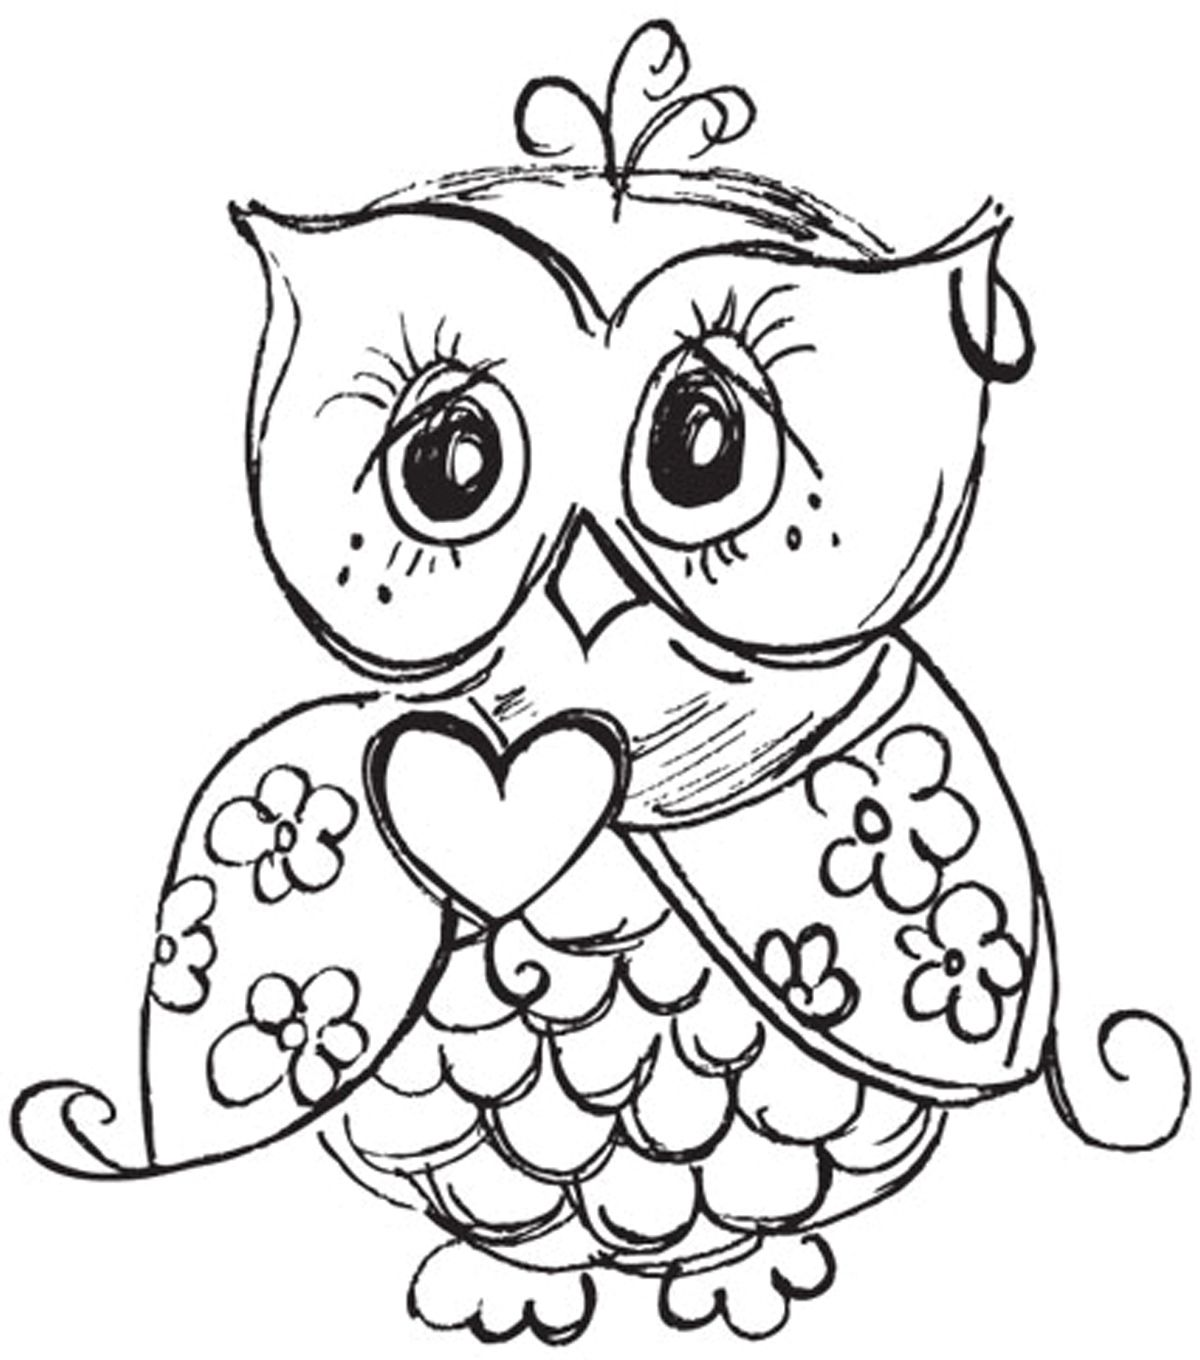 Mini Clear Stamp 3 Quot X5 Quot Owl Owls Owl Coloring Pages